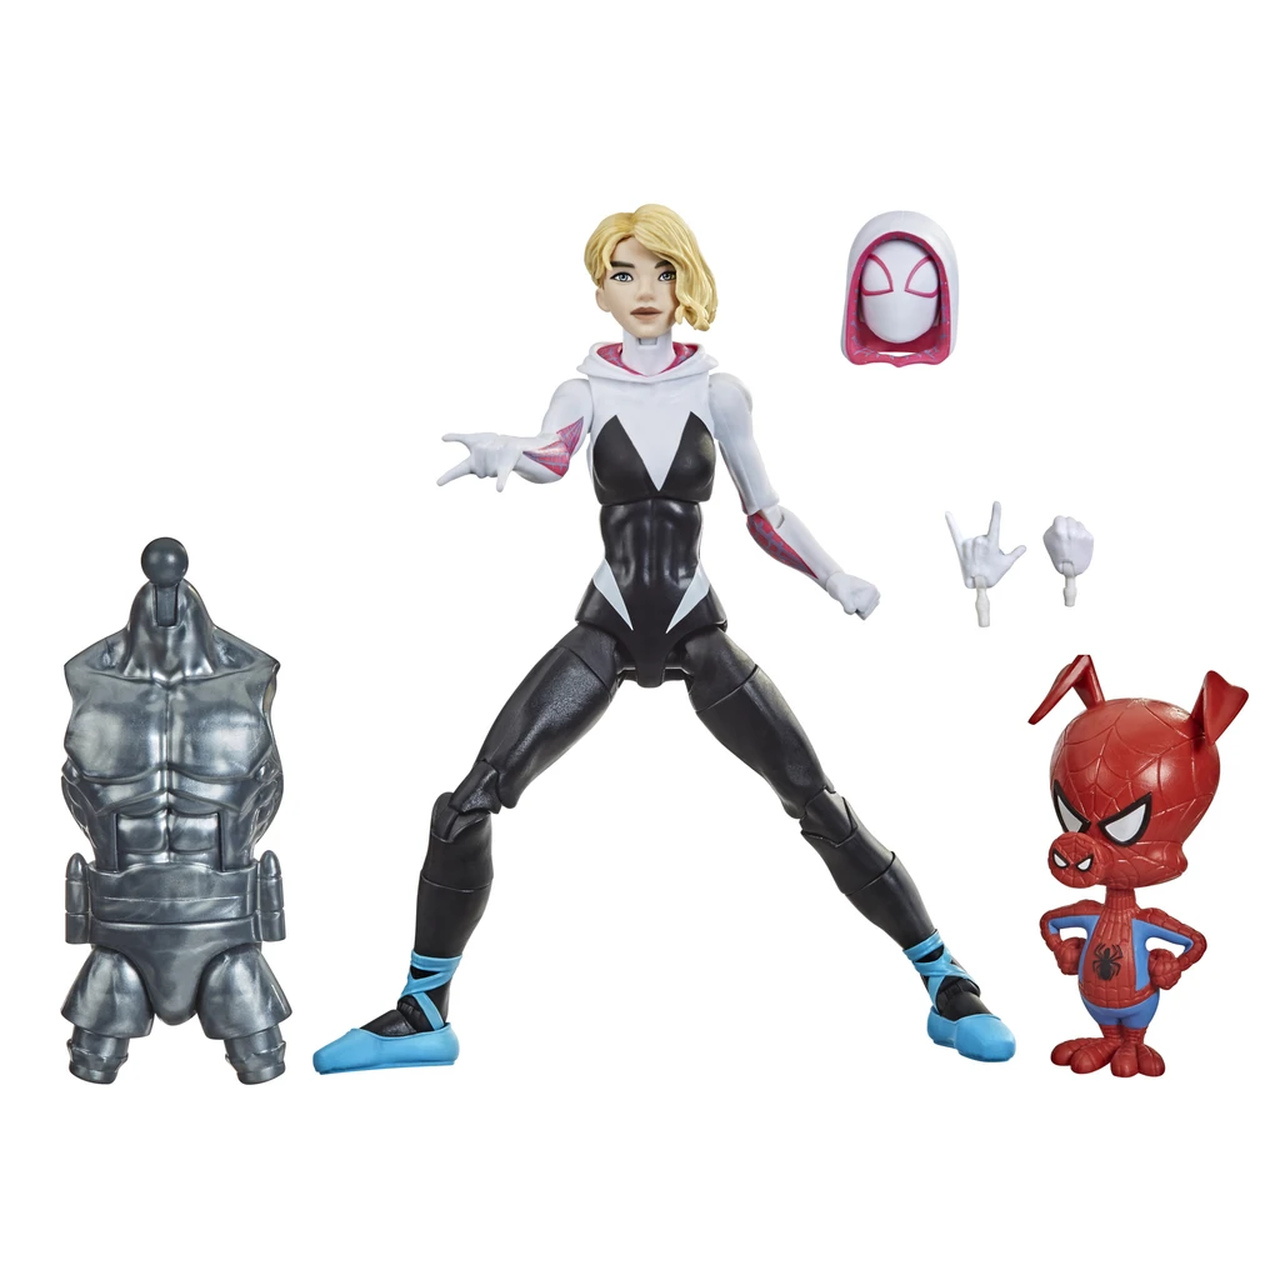 Action Figure Gwen Stacy: Homem-Aranha no Aranhaverso (SpiderMan Into The SpiderVerse) Marvel Legends Series - Hasbro